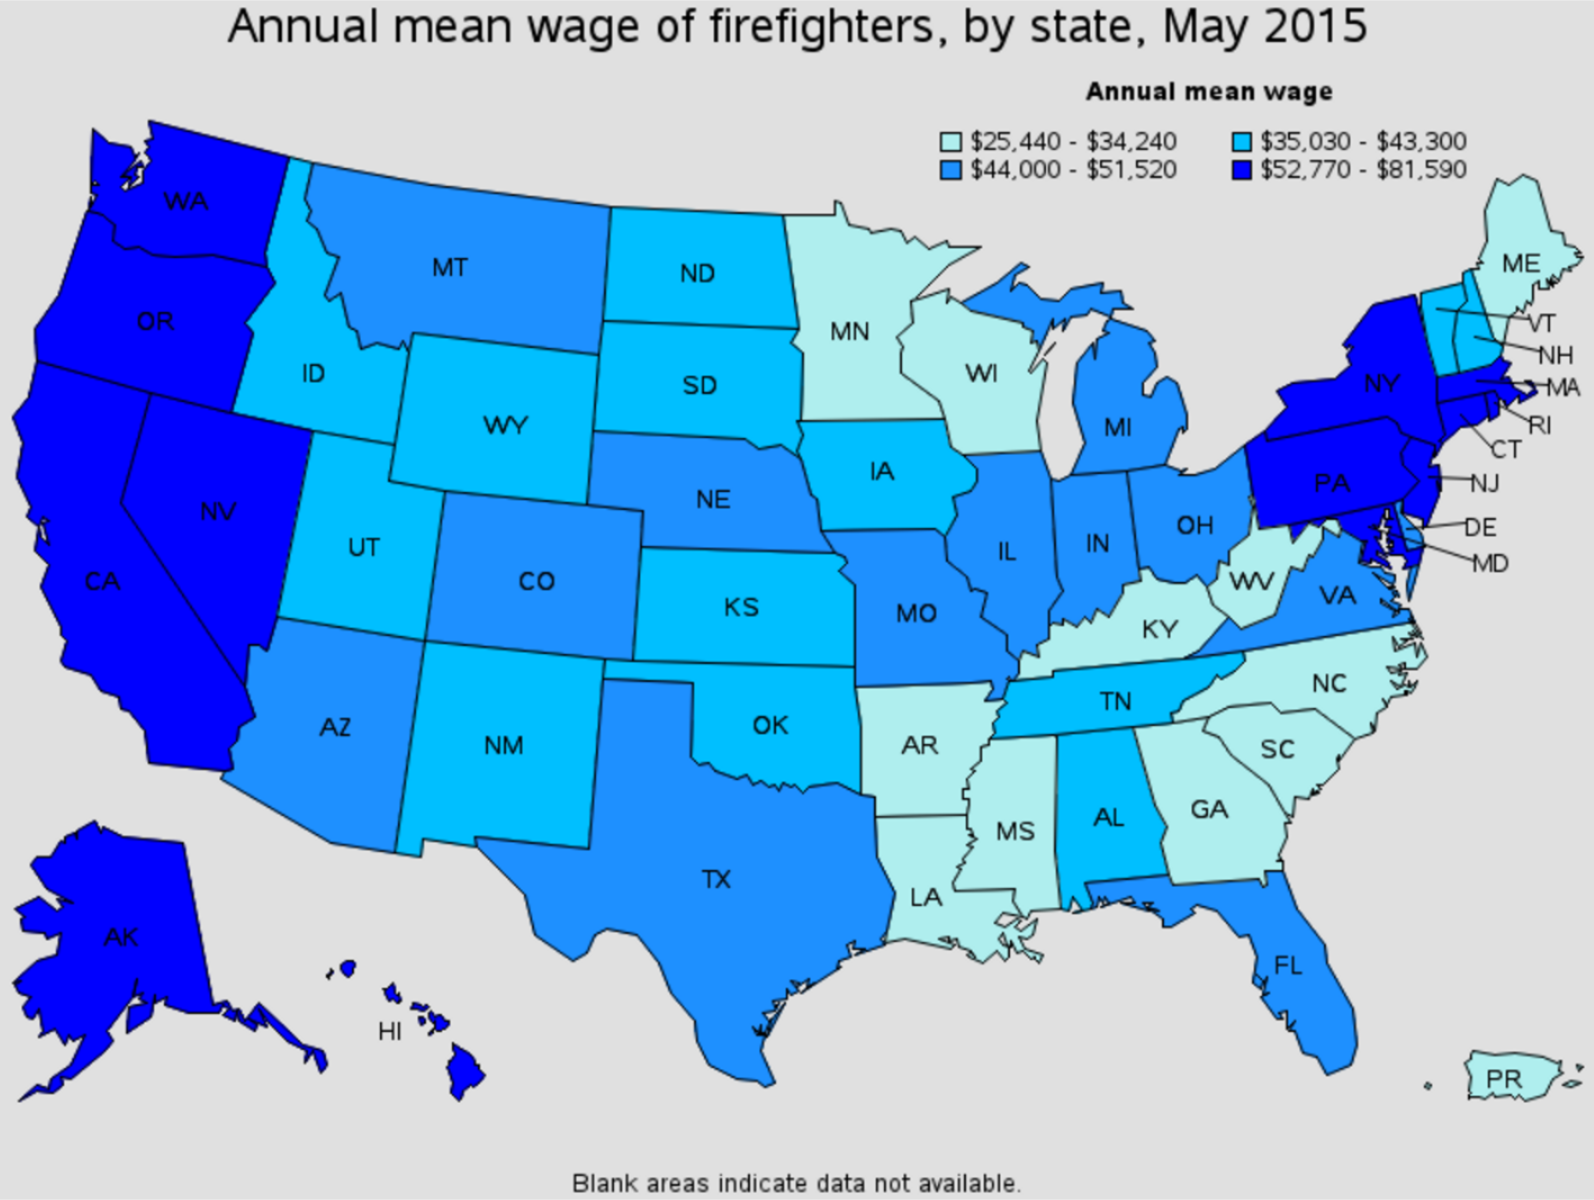 firefighter average salary by state Liberty South Carolina